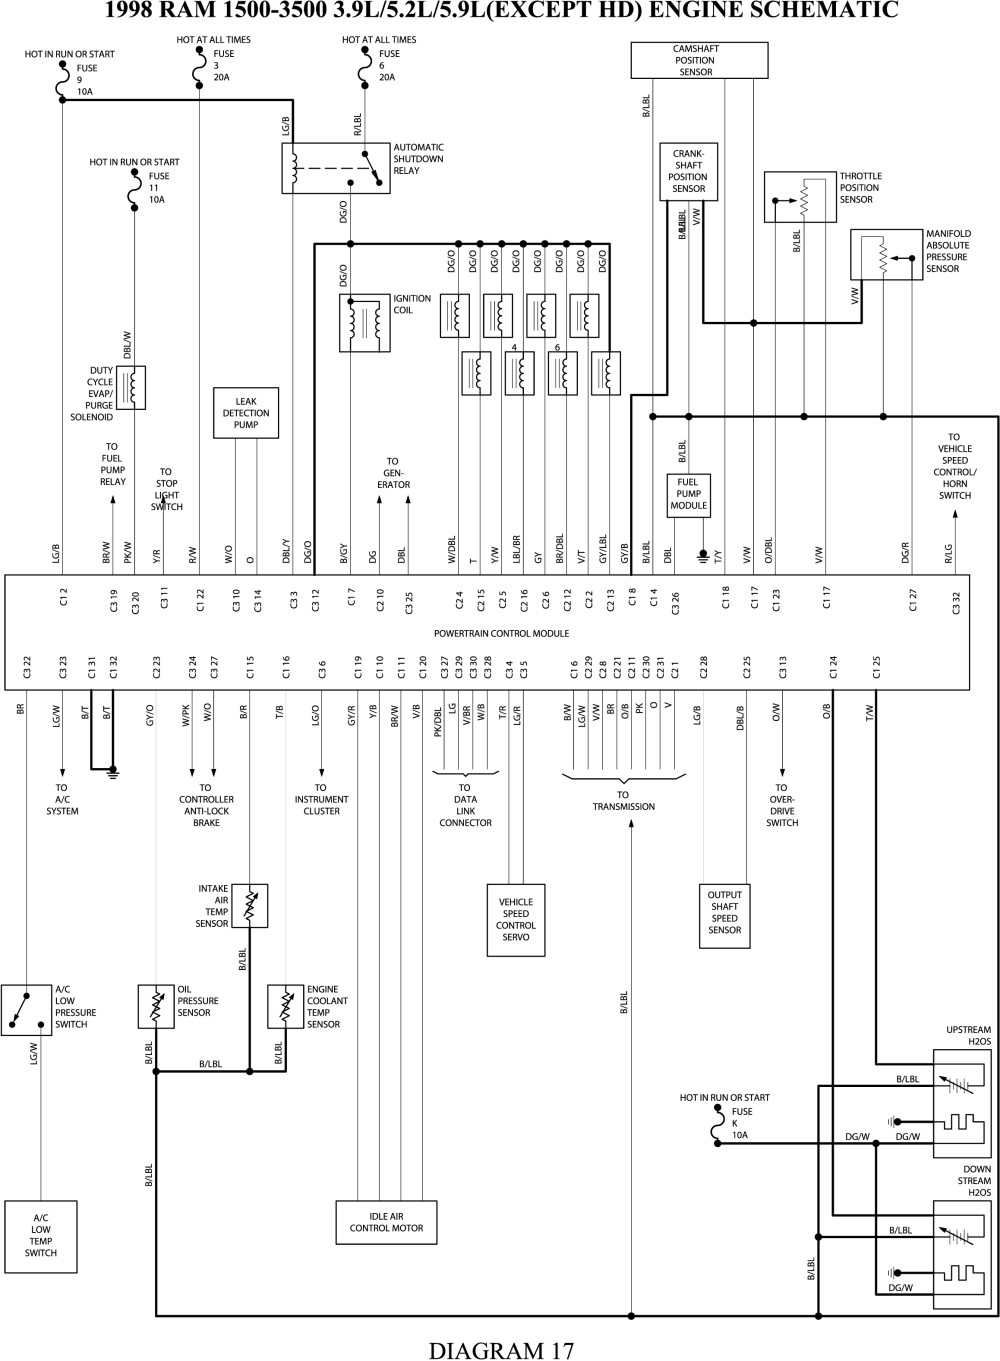 2004 dodge ram 1500 radio wiring diagram Collection-Radio Wiring Diagram 2004 Dodge Durango Dogboi Info 7-j